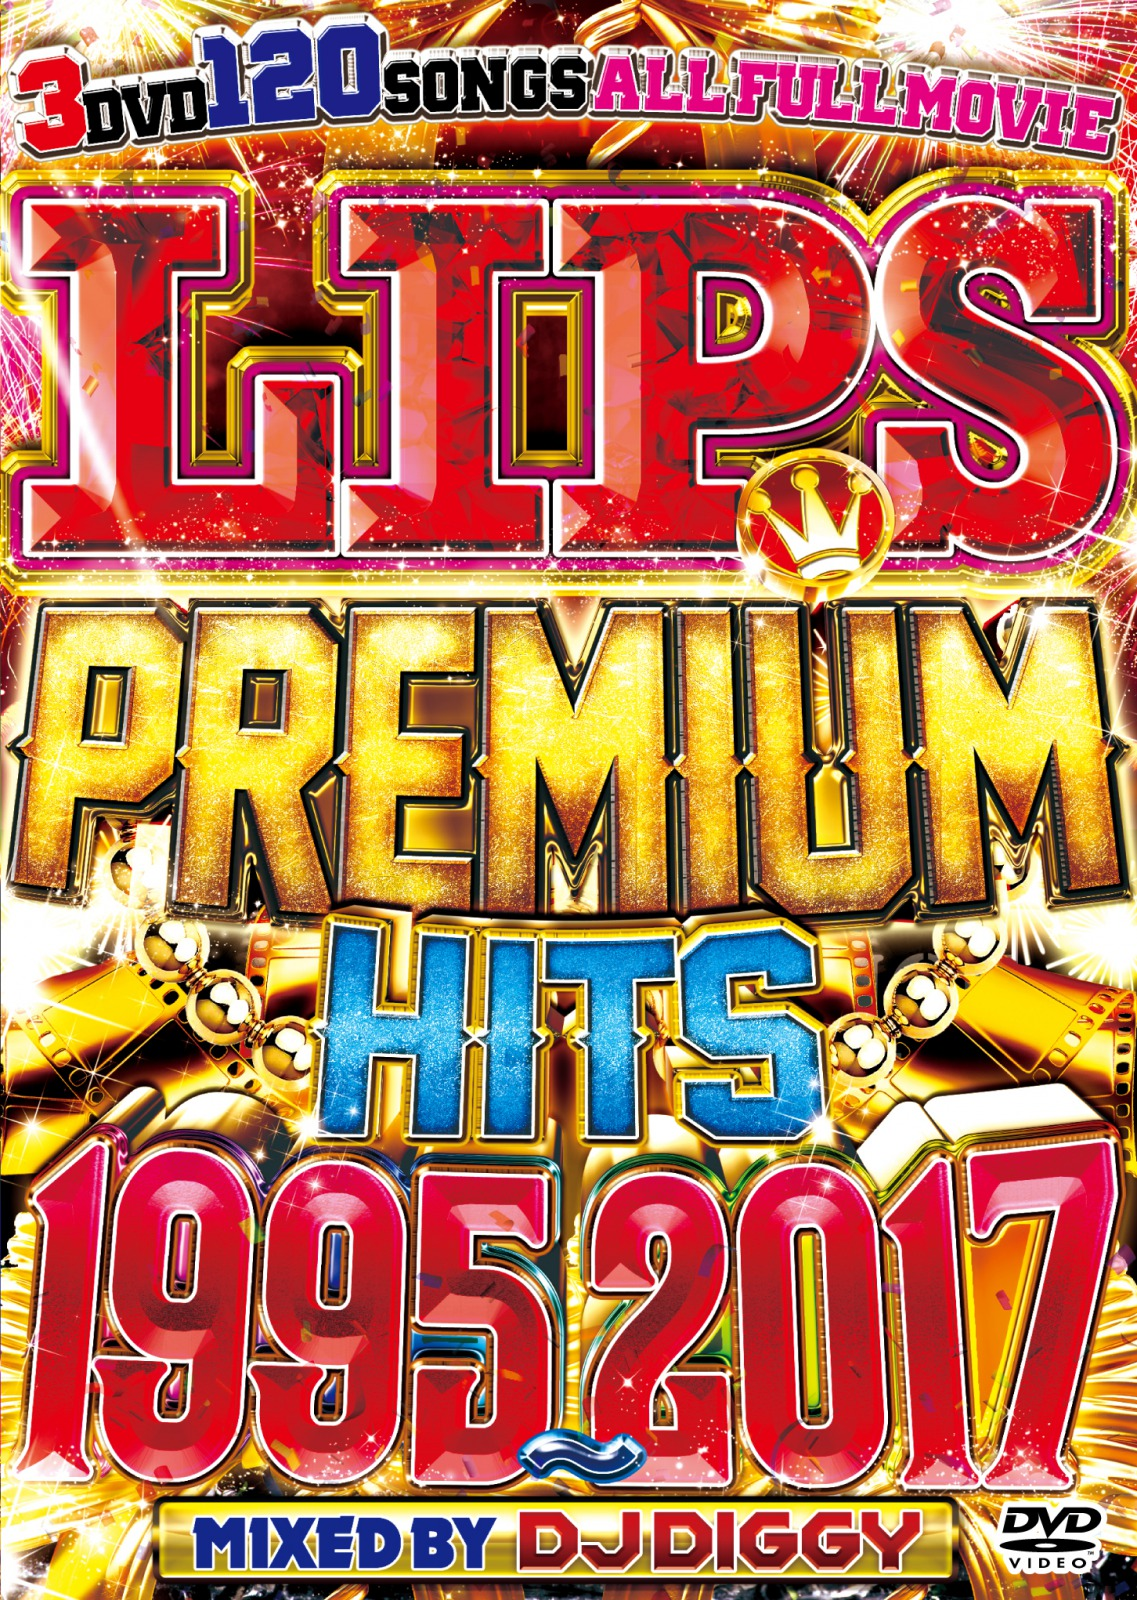 【3枚組】 LIPS PREMIUM HITS 1995-2017 / DJ DIGGY 【[国内盤MIX DVD】